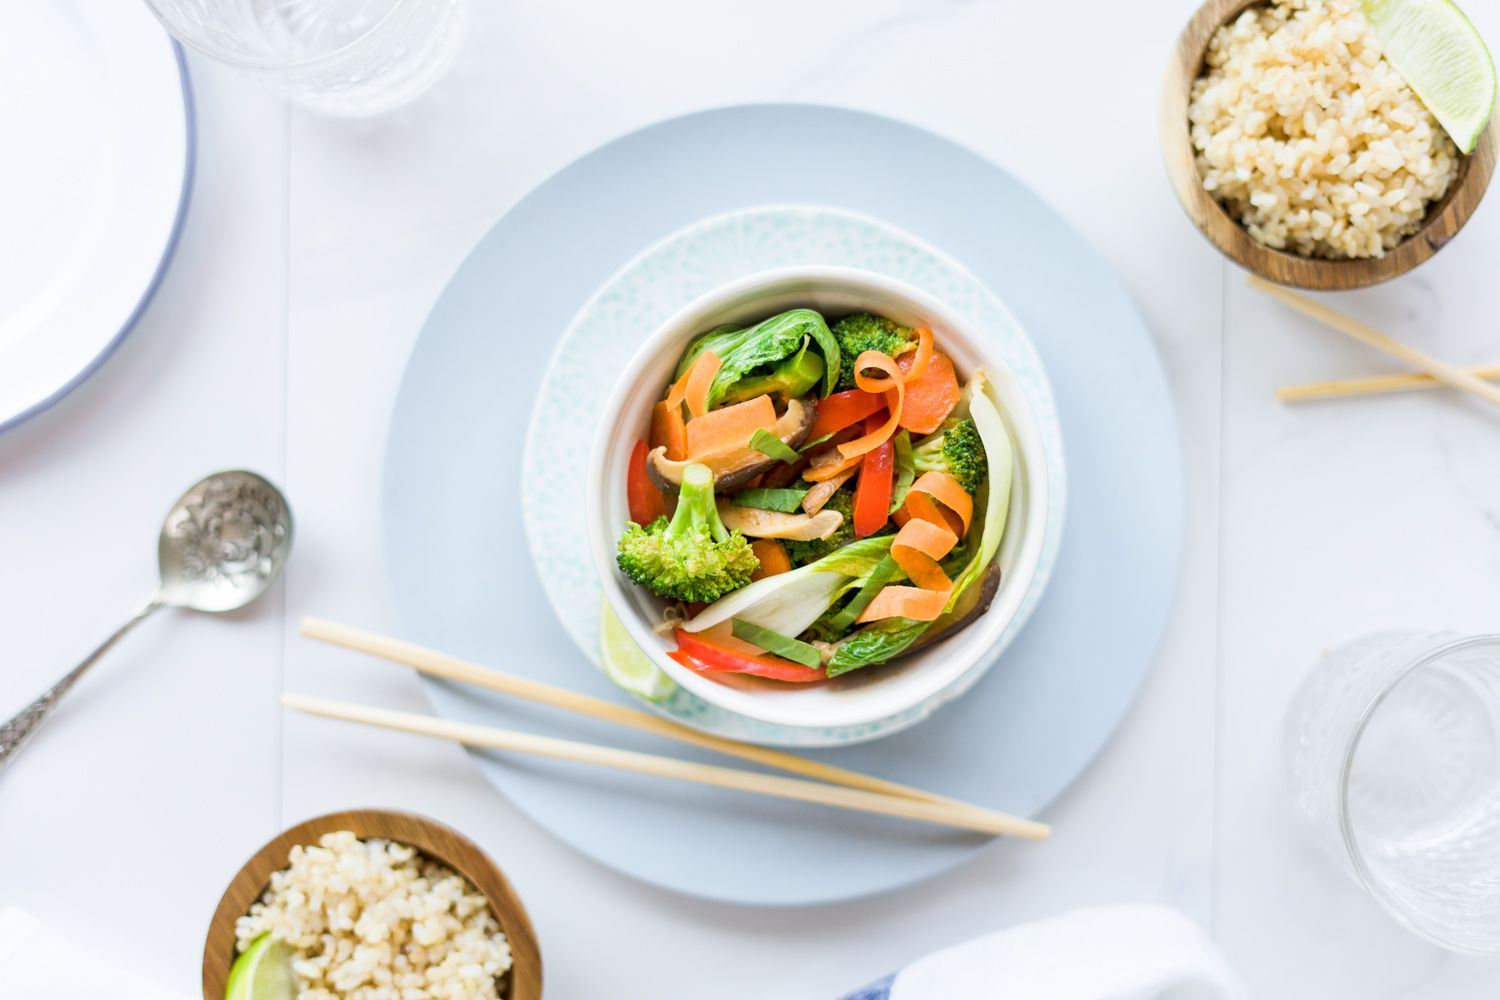 Stir fried vegetables and rice with chopsticks